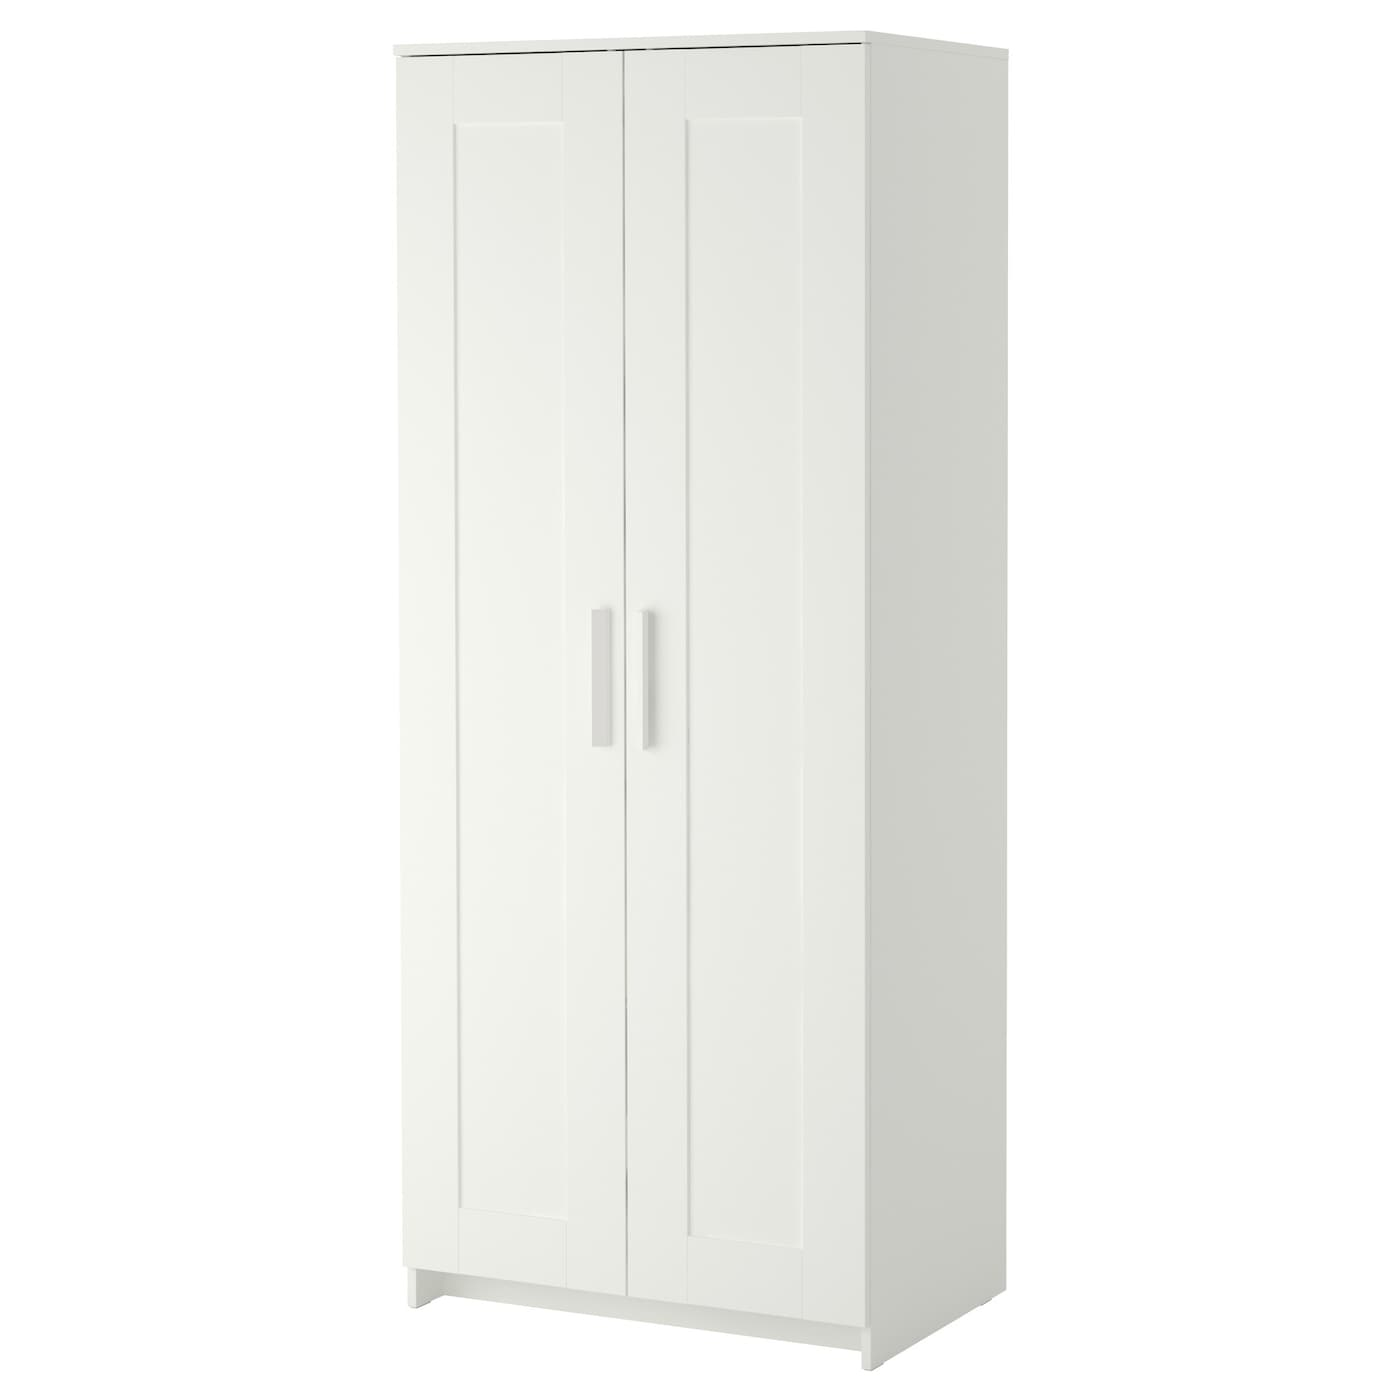 BRIMNES Wardrobe with 2 doors White 78x190 cm IKEA